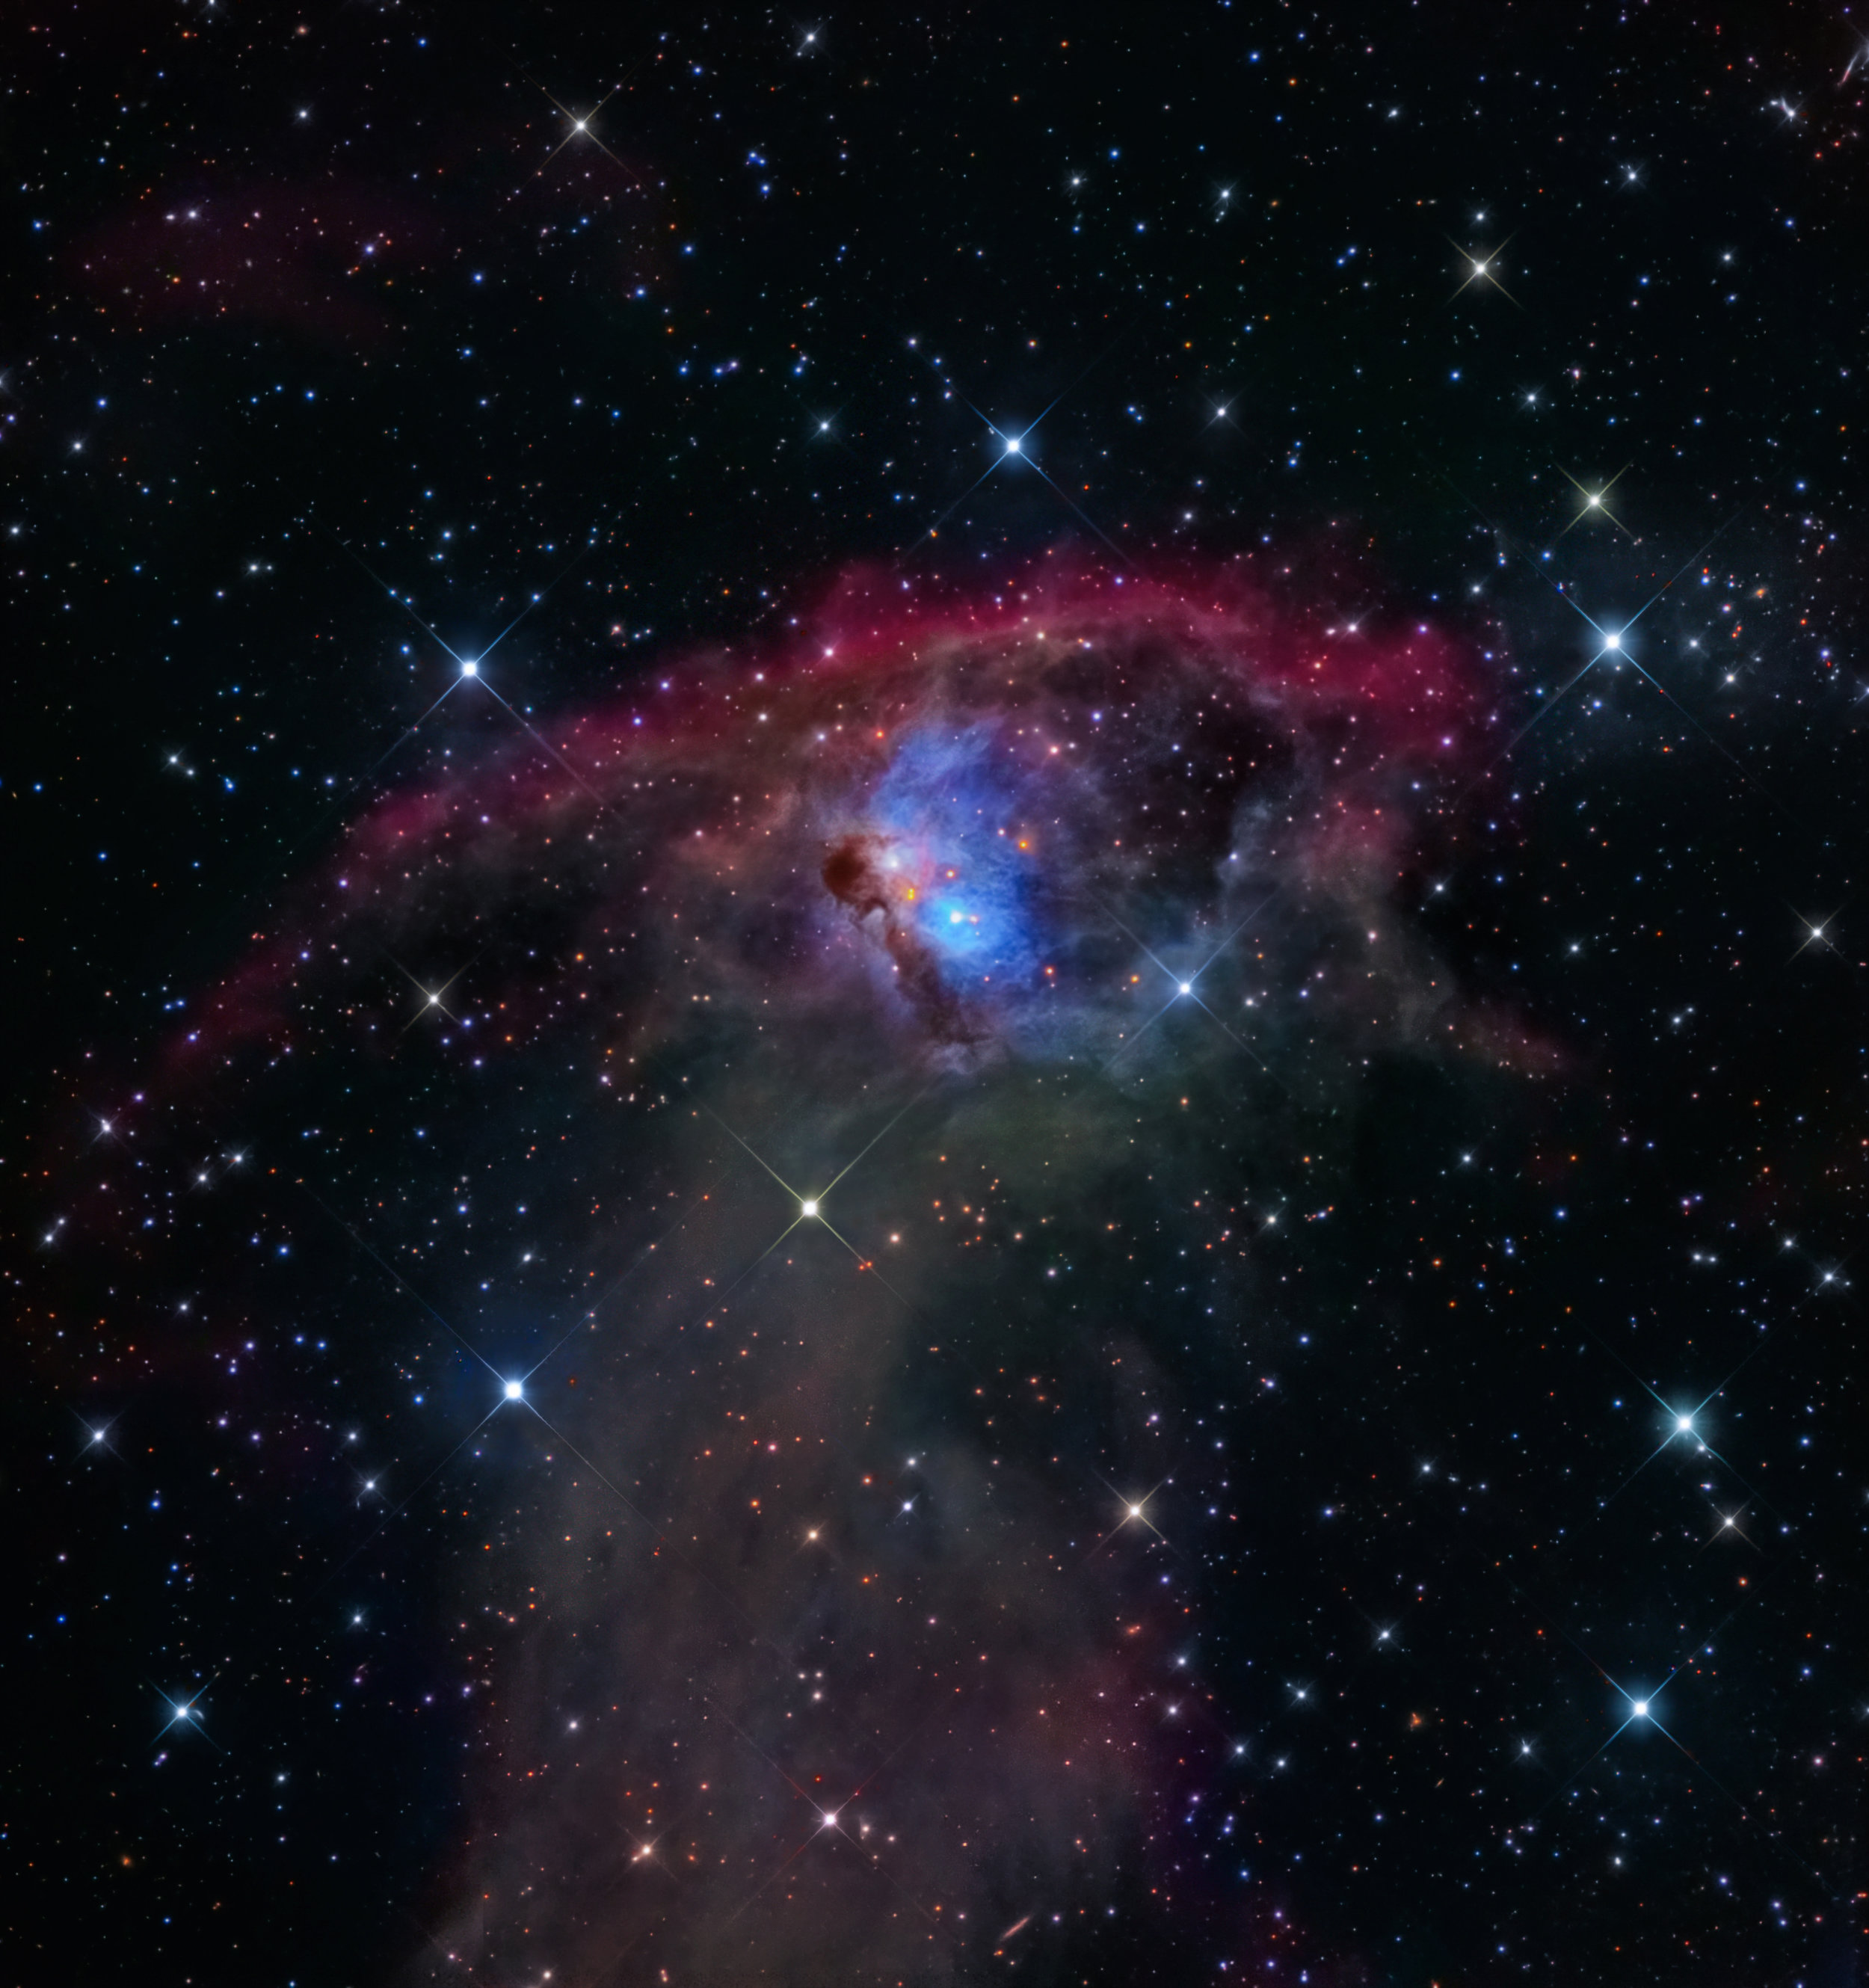 NGC 1788 in Orion